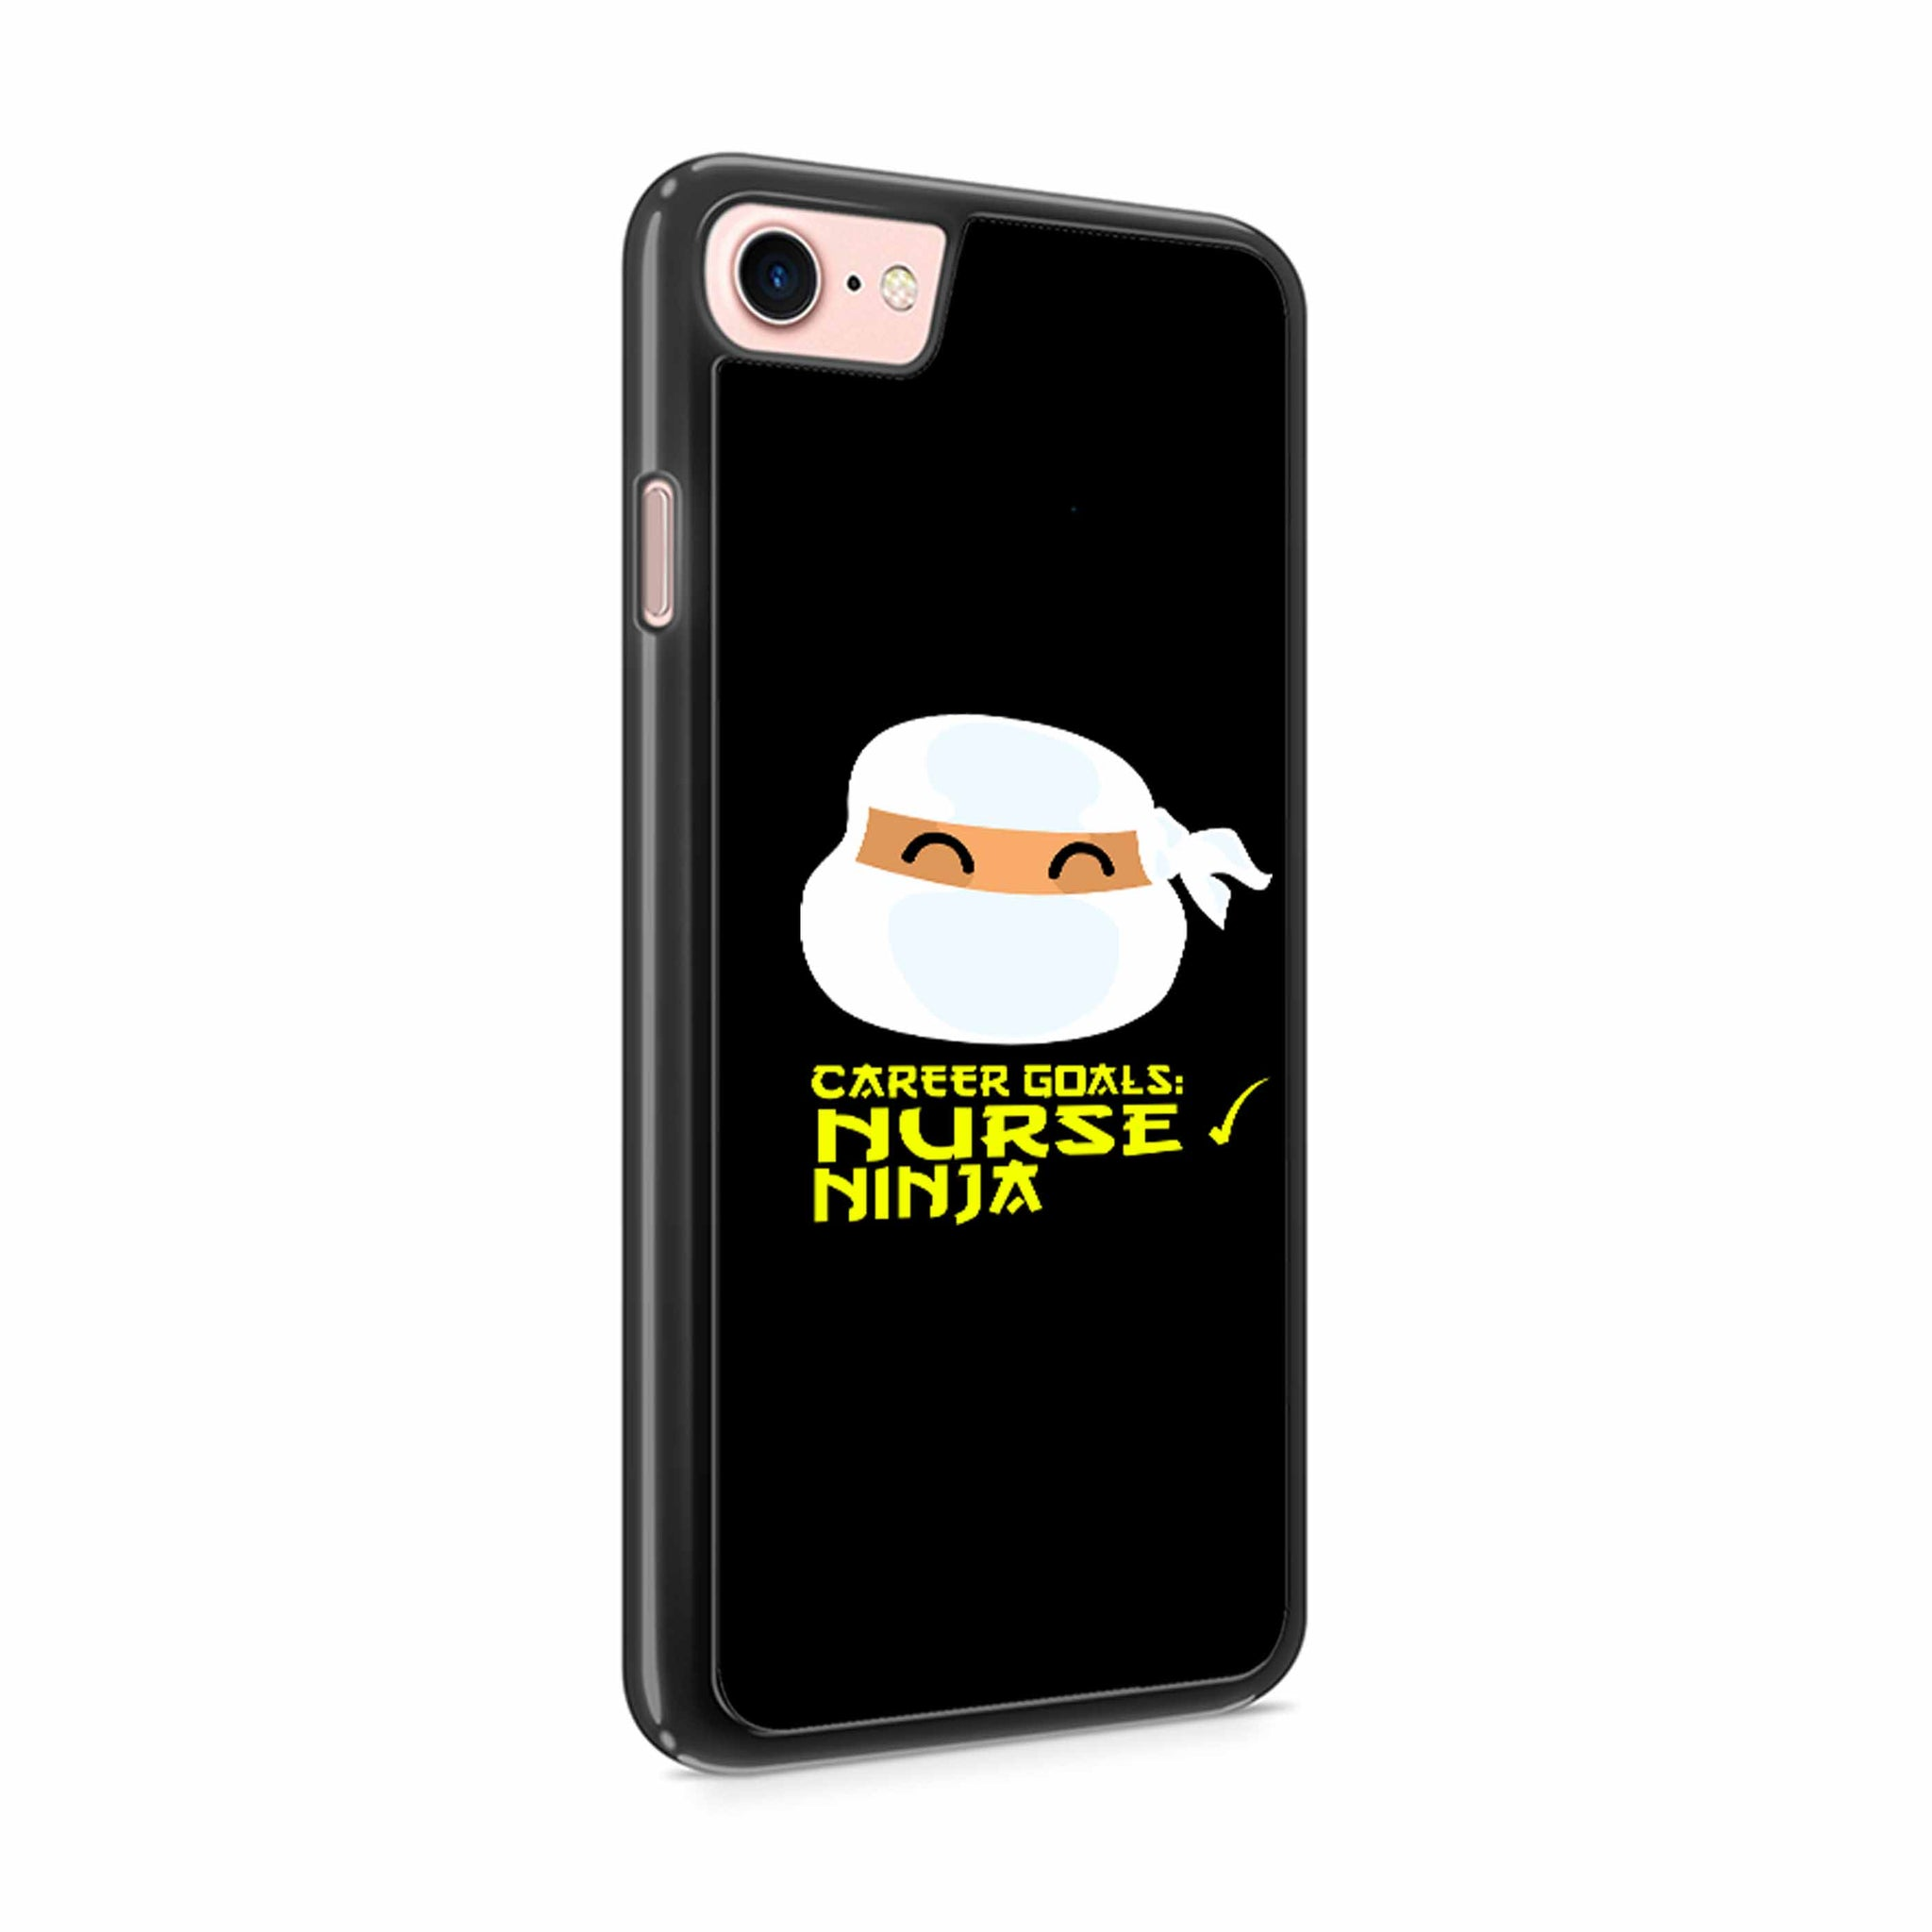 Carrer Goals Sonographer Ninja iPhone 8 / 8 Plus Case